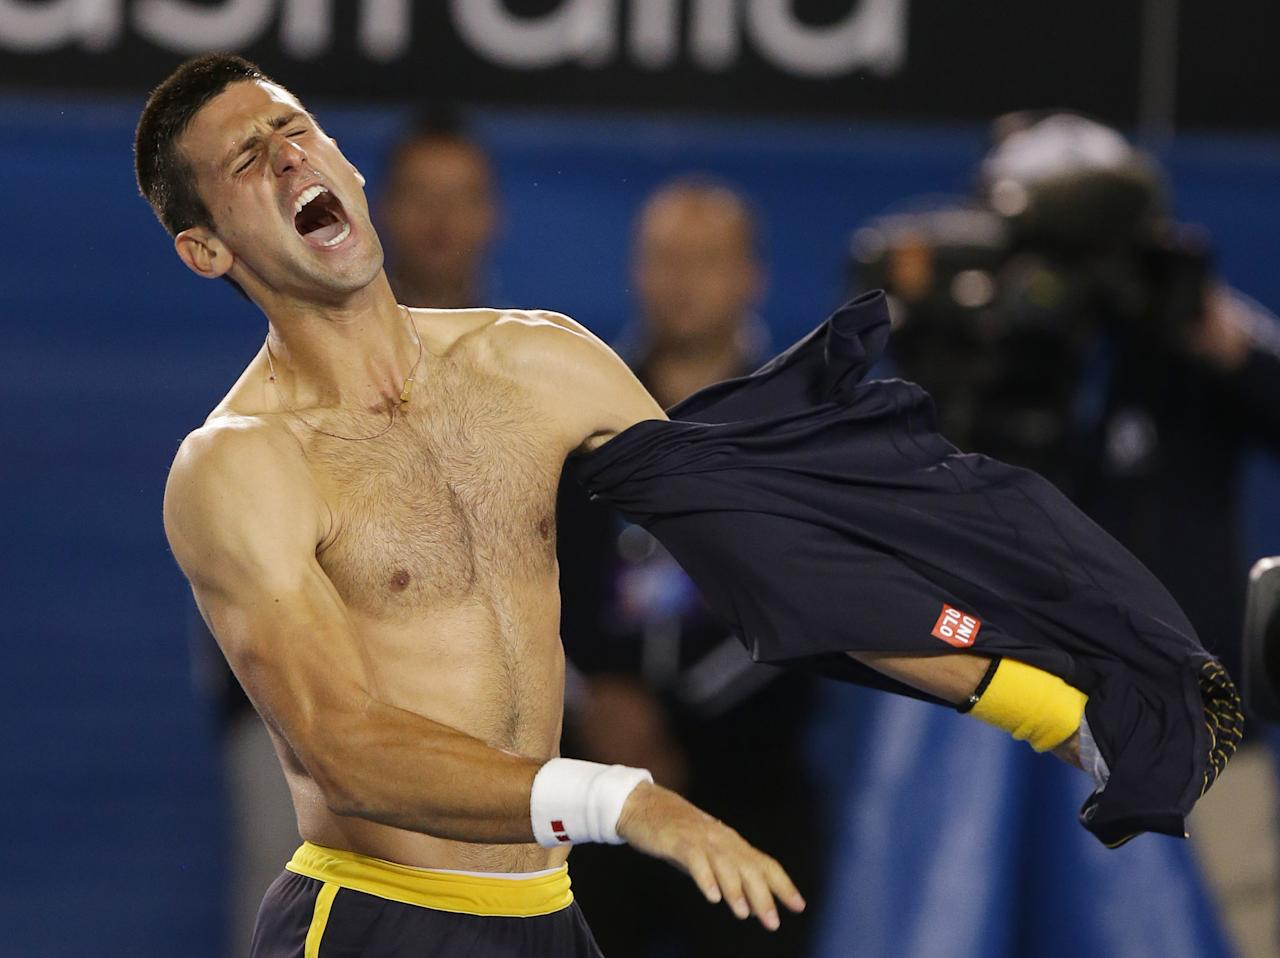 Serbia's Novak Djokovic rips his shirt off as he celebrates his fourth round win over Switzerland's Stanislas Wawrinka at the Australian Open tennis championship in Melbourne, Australia, Monday, Jan. 21, 2013. (AP Photo/Dita Alangkara)